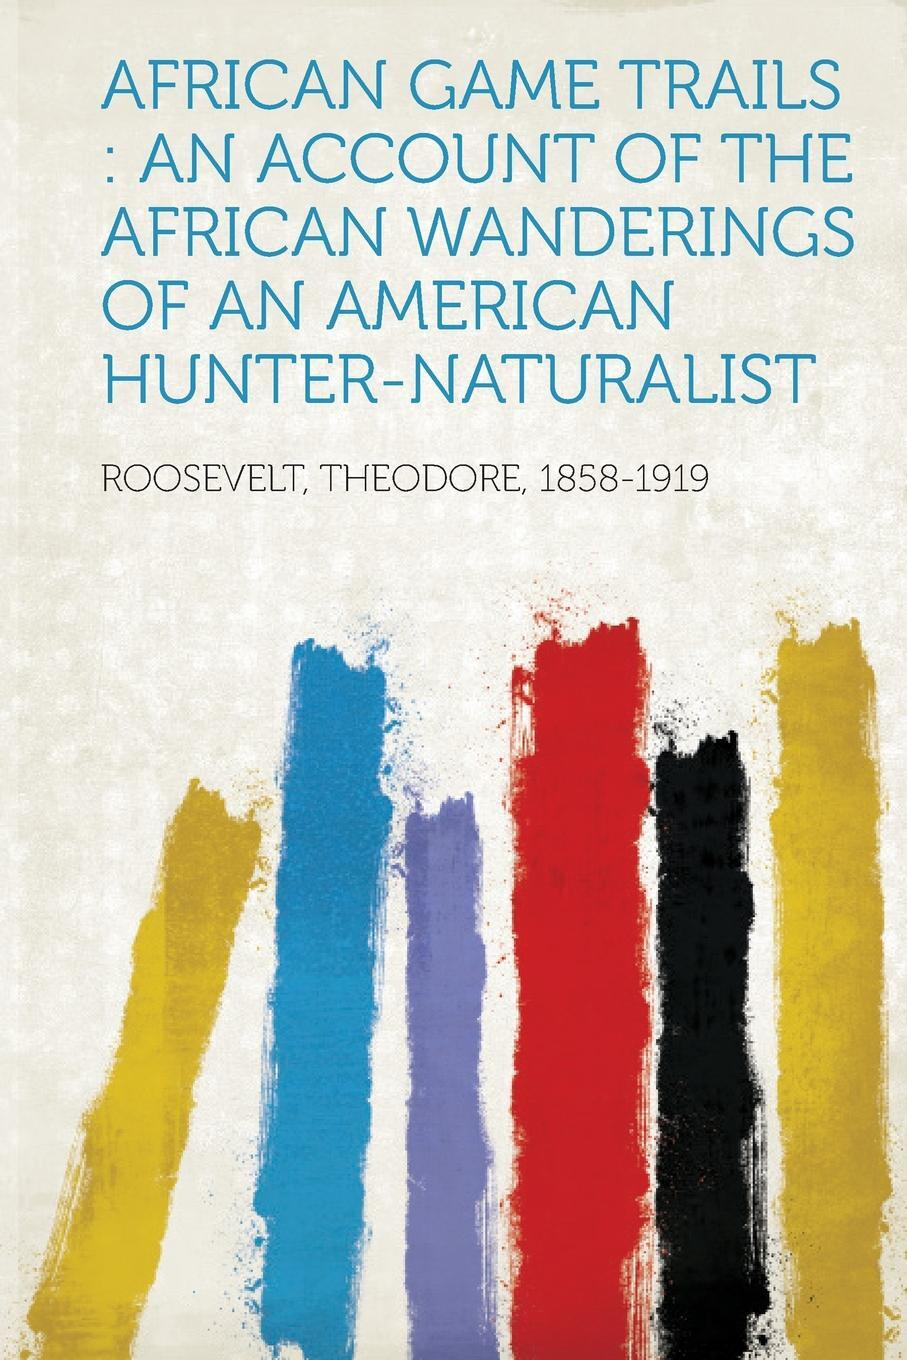 Roosevelt Theodore 1858-1919. African Game Trails. an Account of the African Wanderings of an American Hunter-Naturalist